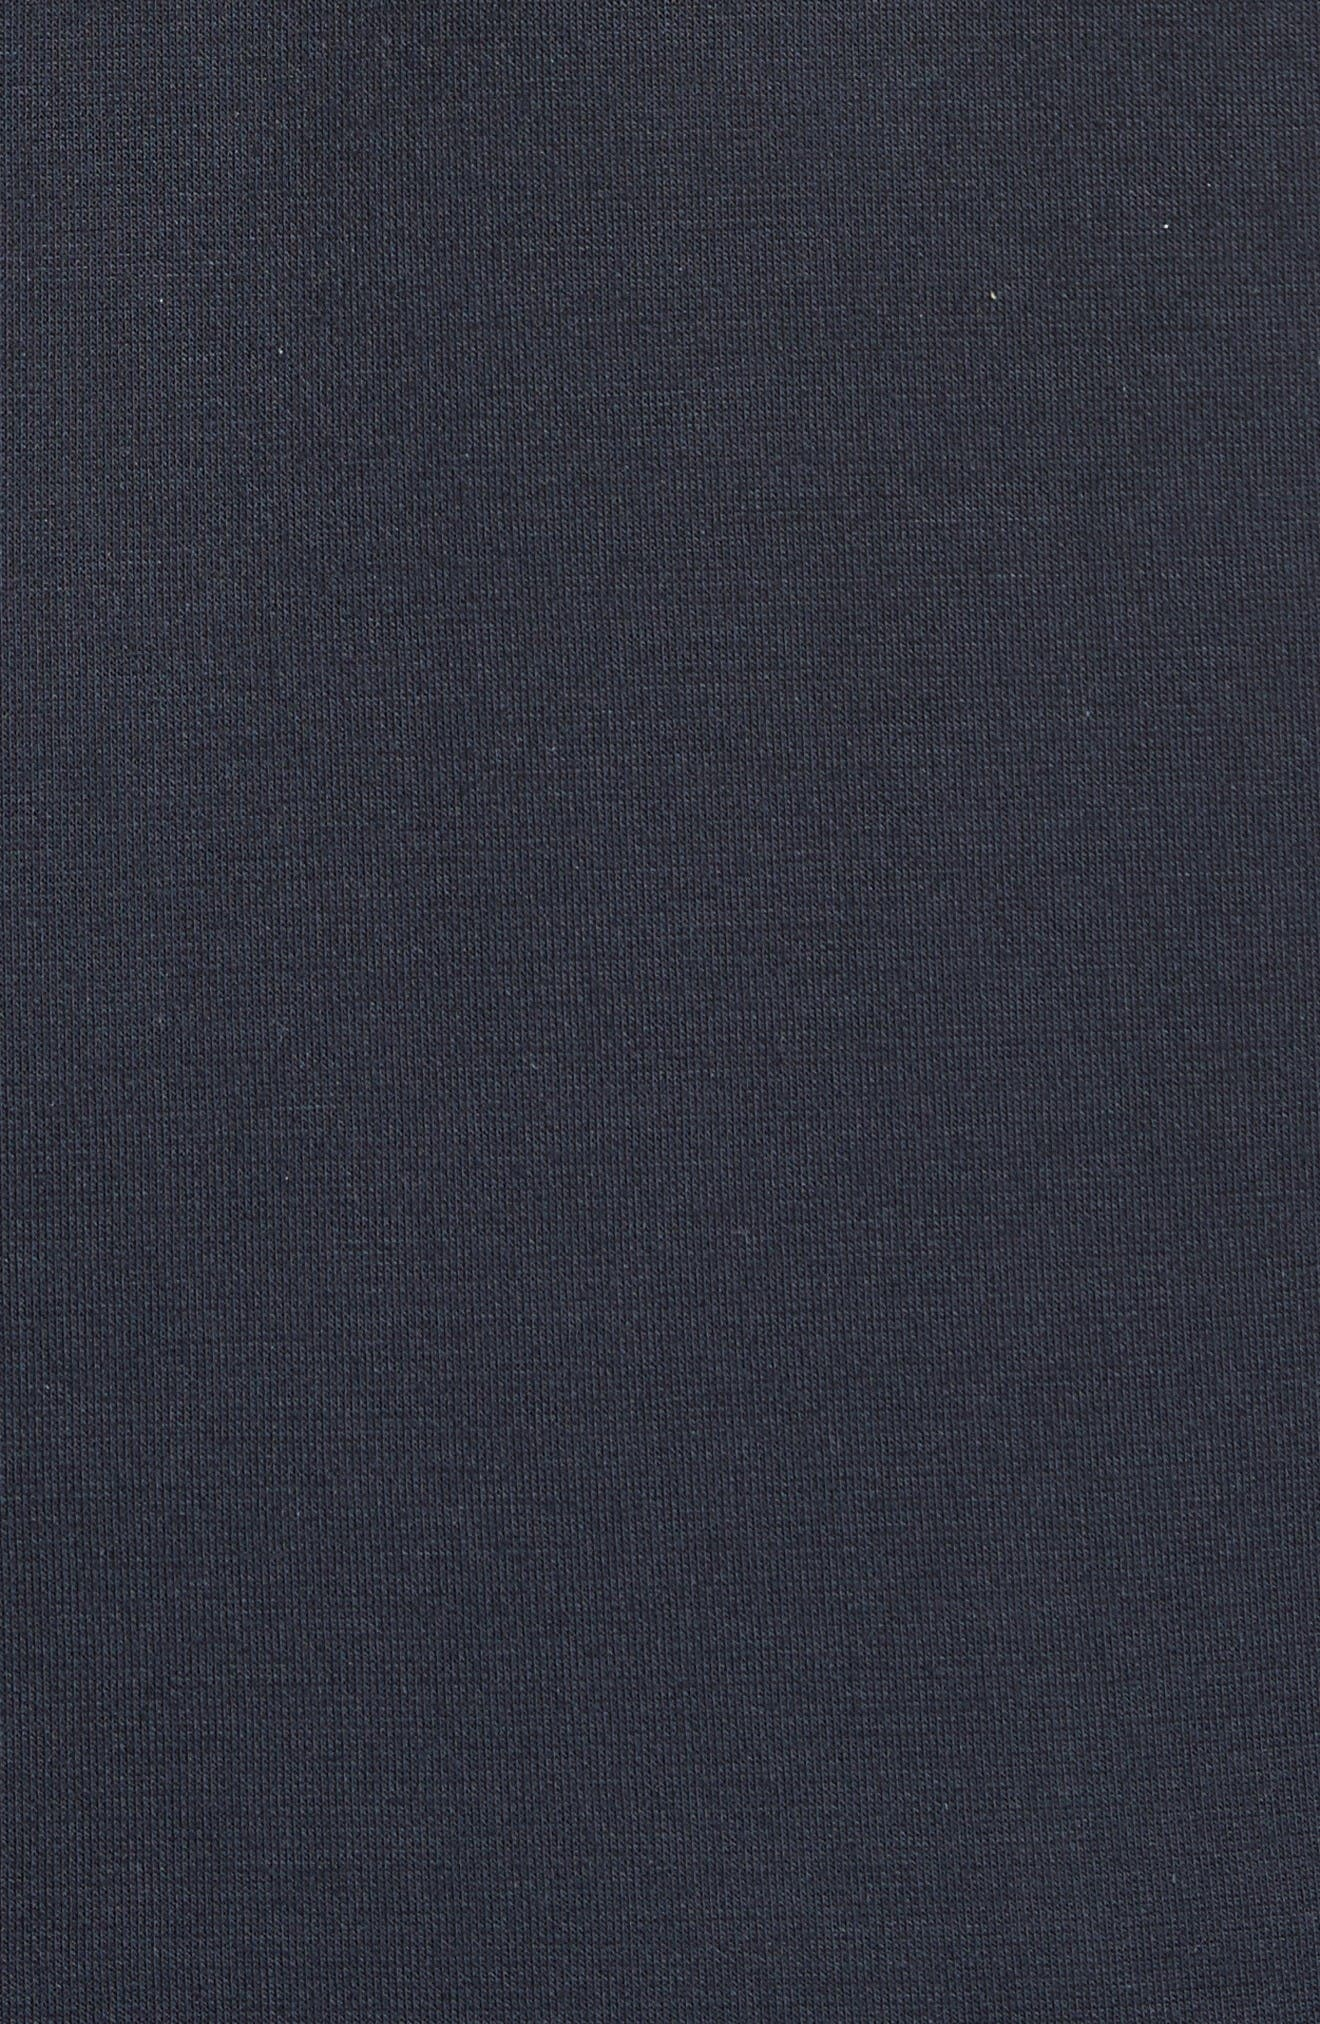 Two-Tone Track Jacket,                             Alternate thumbnail 5, color,                             Navy